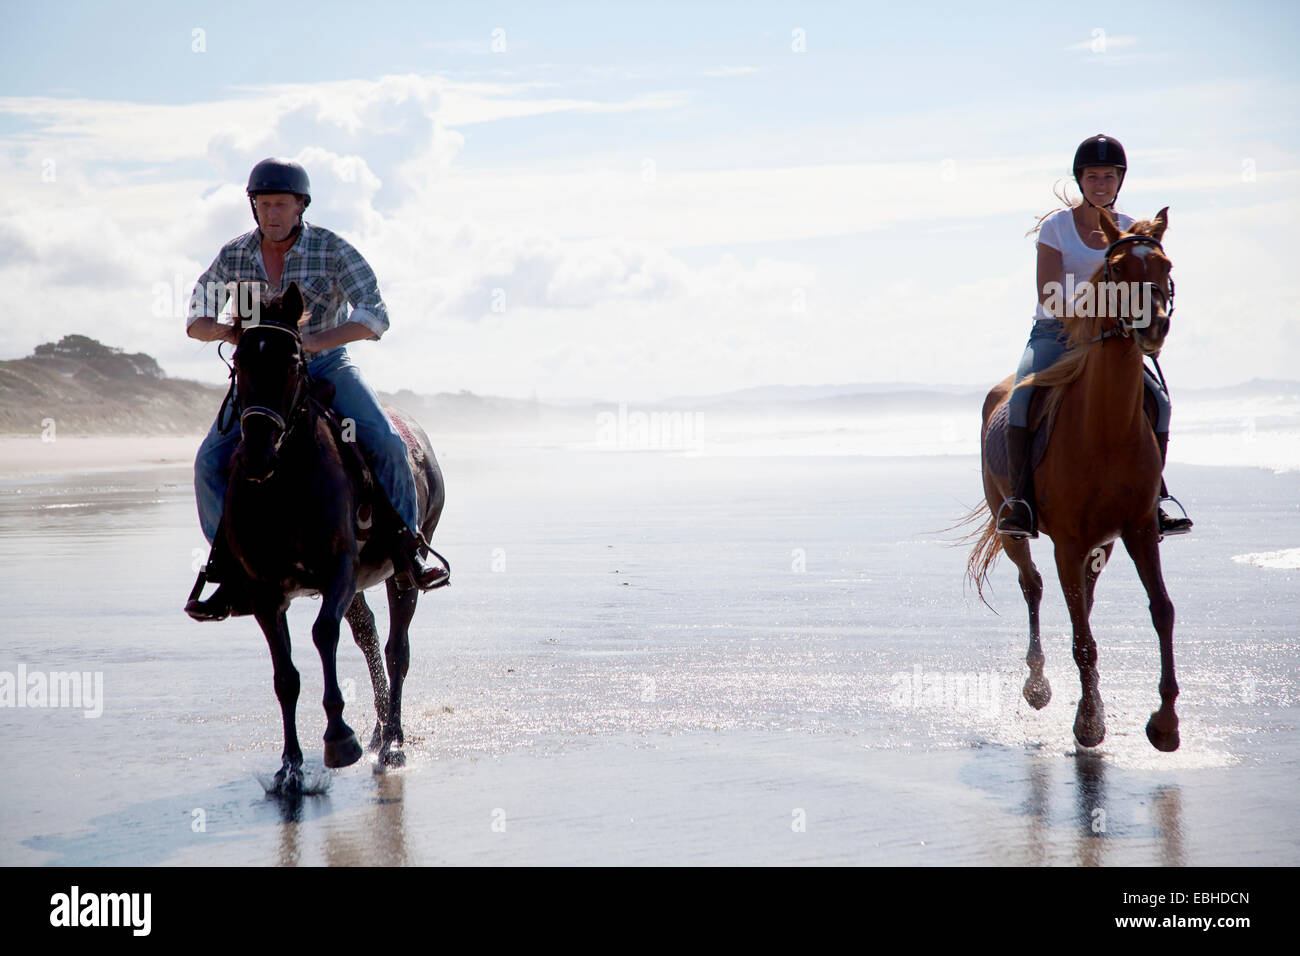 Horse riders galloping, Pakiri Beach, Auckland, New Zealand - Stock Image